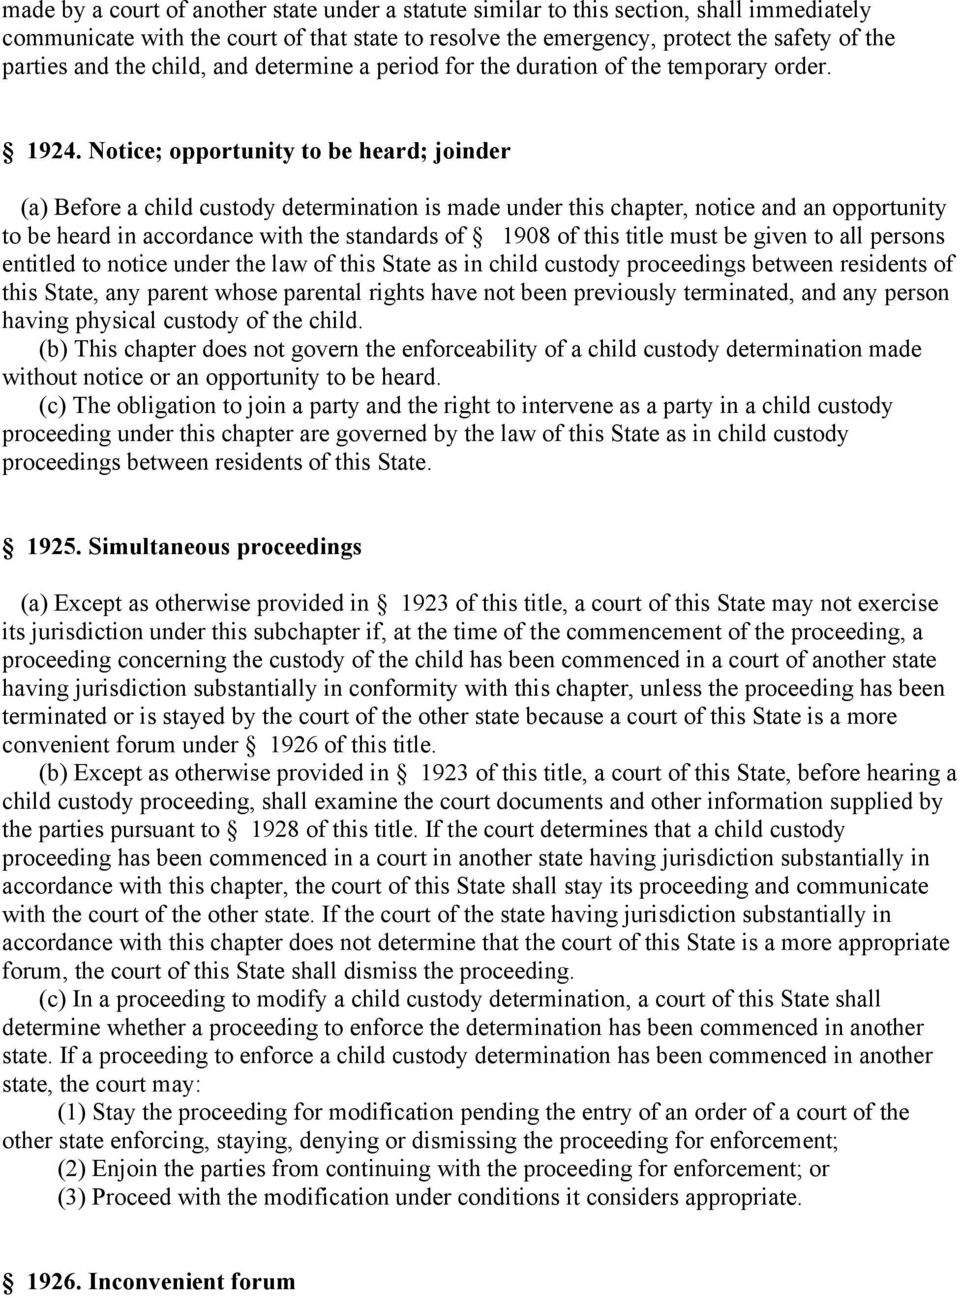 Notice; opportunity to be heard; joinder (a) Before a child custody determination is made under this chapter, notice and an opportunity to be heard in accordance with the standards of 1908 of this